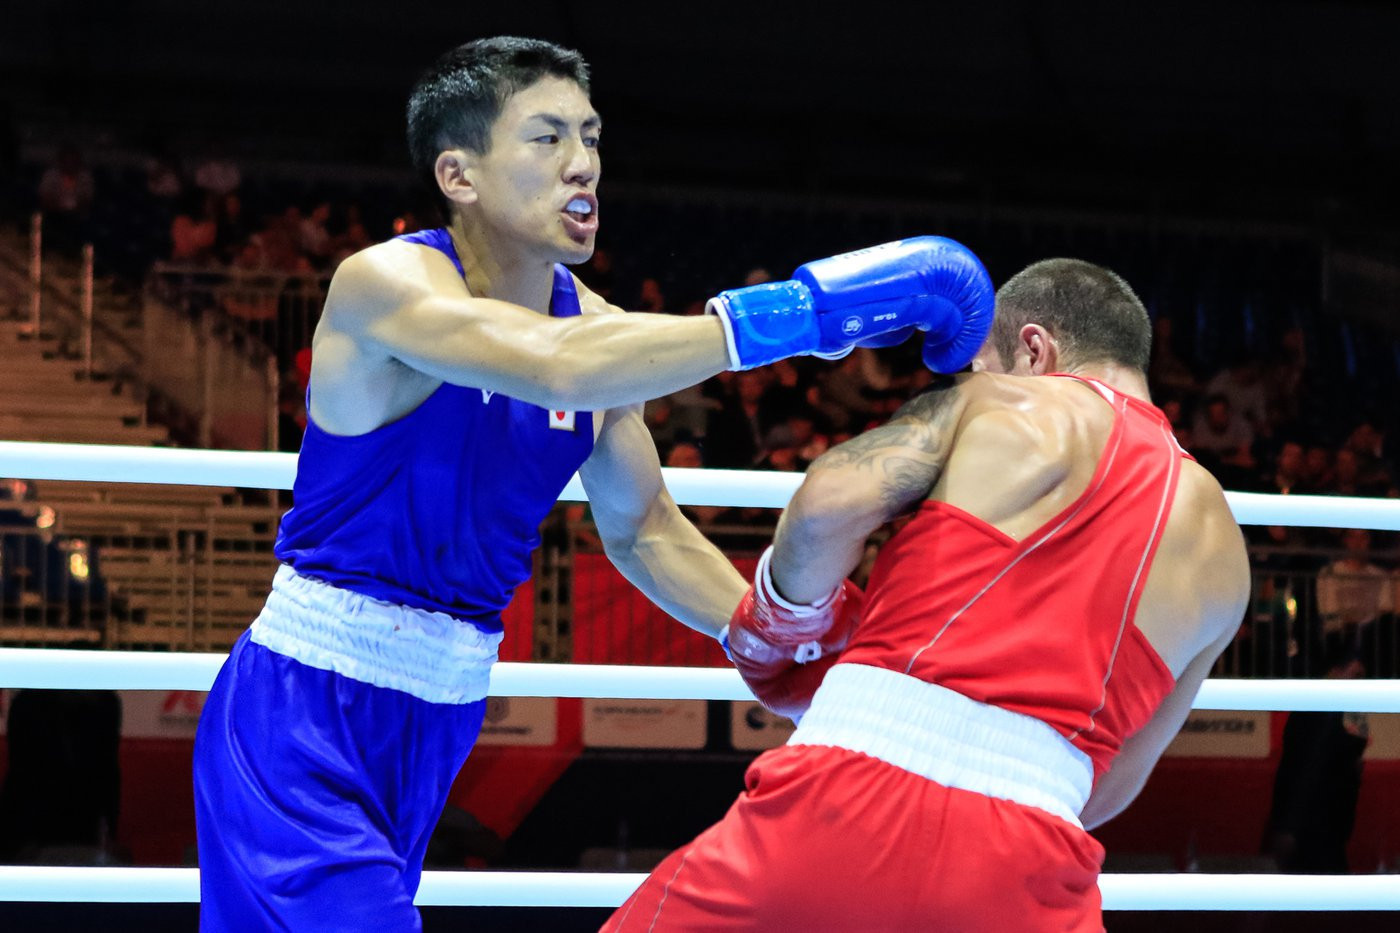 Daisuke Narimatsu of Japan defeated Otar Eranosyan 4-0, knocking the light welterweight fifth seed out of the competition ©Yekaterinburg 2019